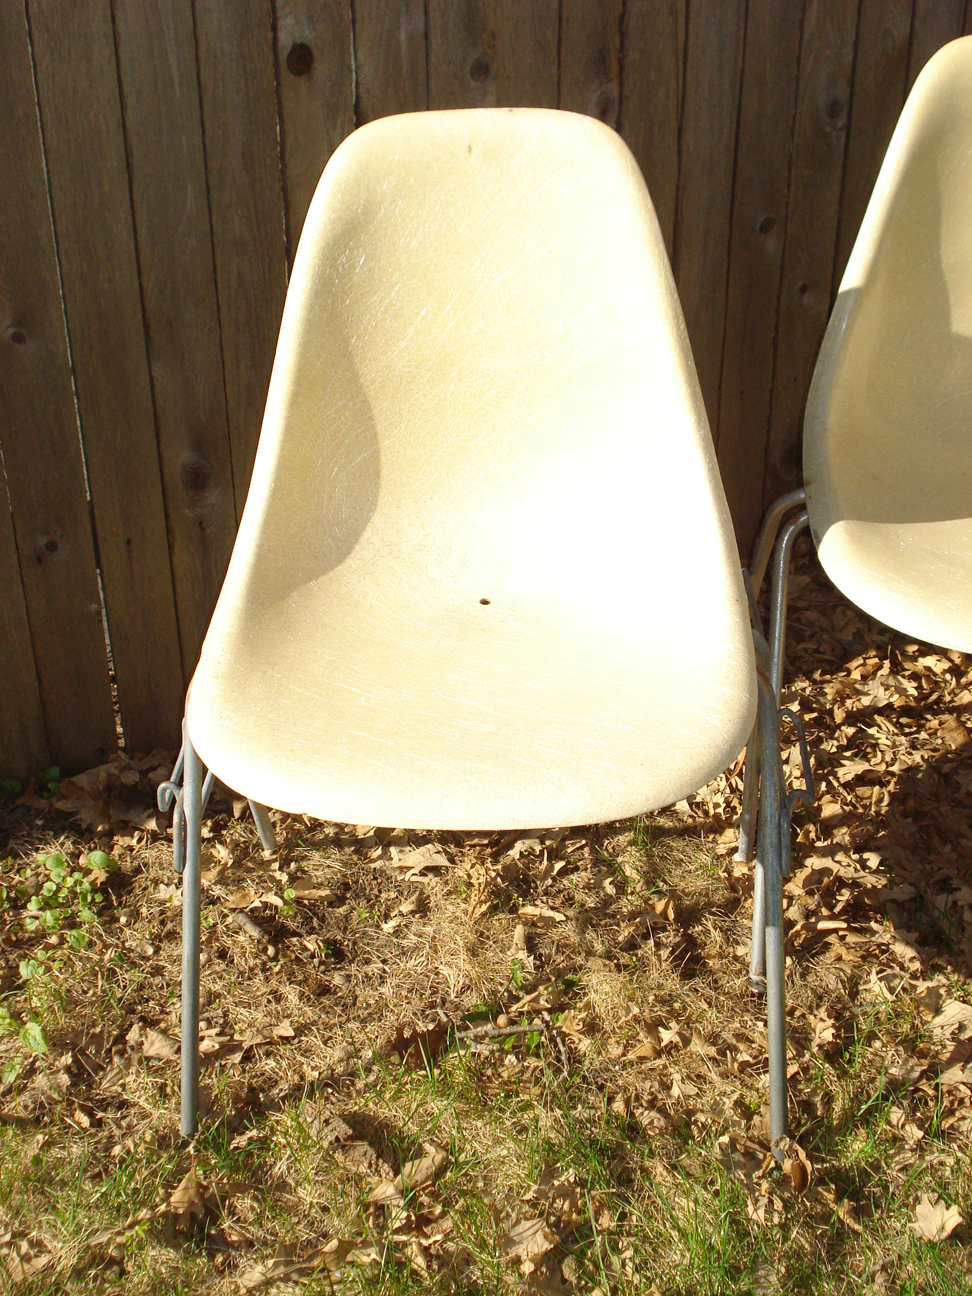 Herman Miller fiberglass shell chair with hole drilled in seat